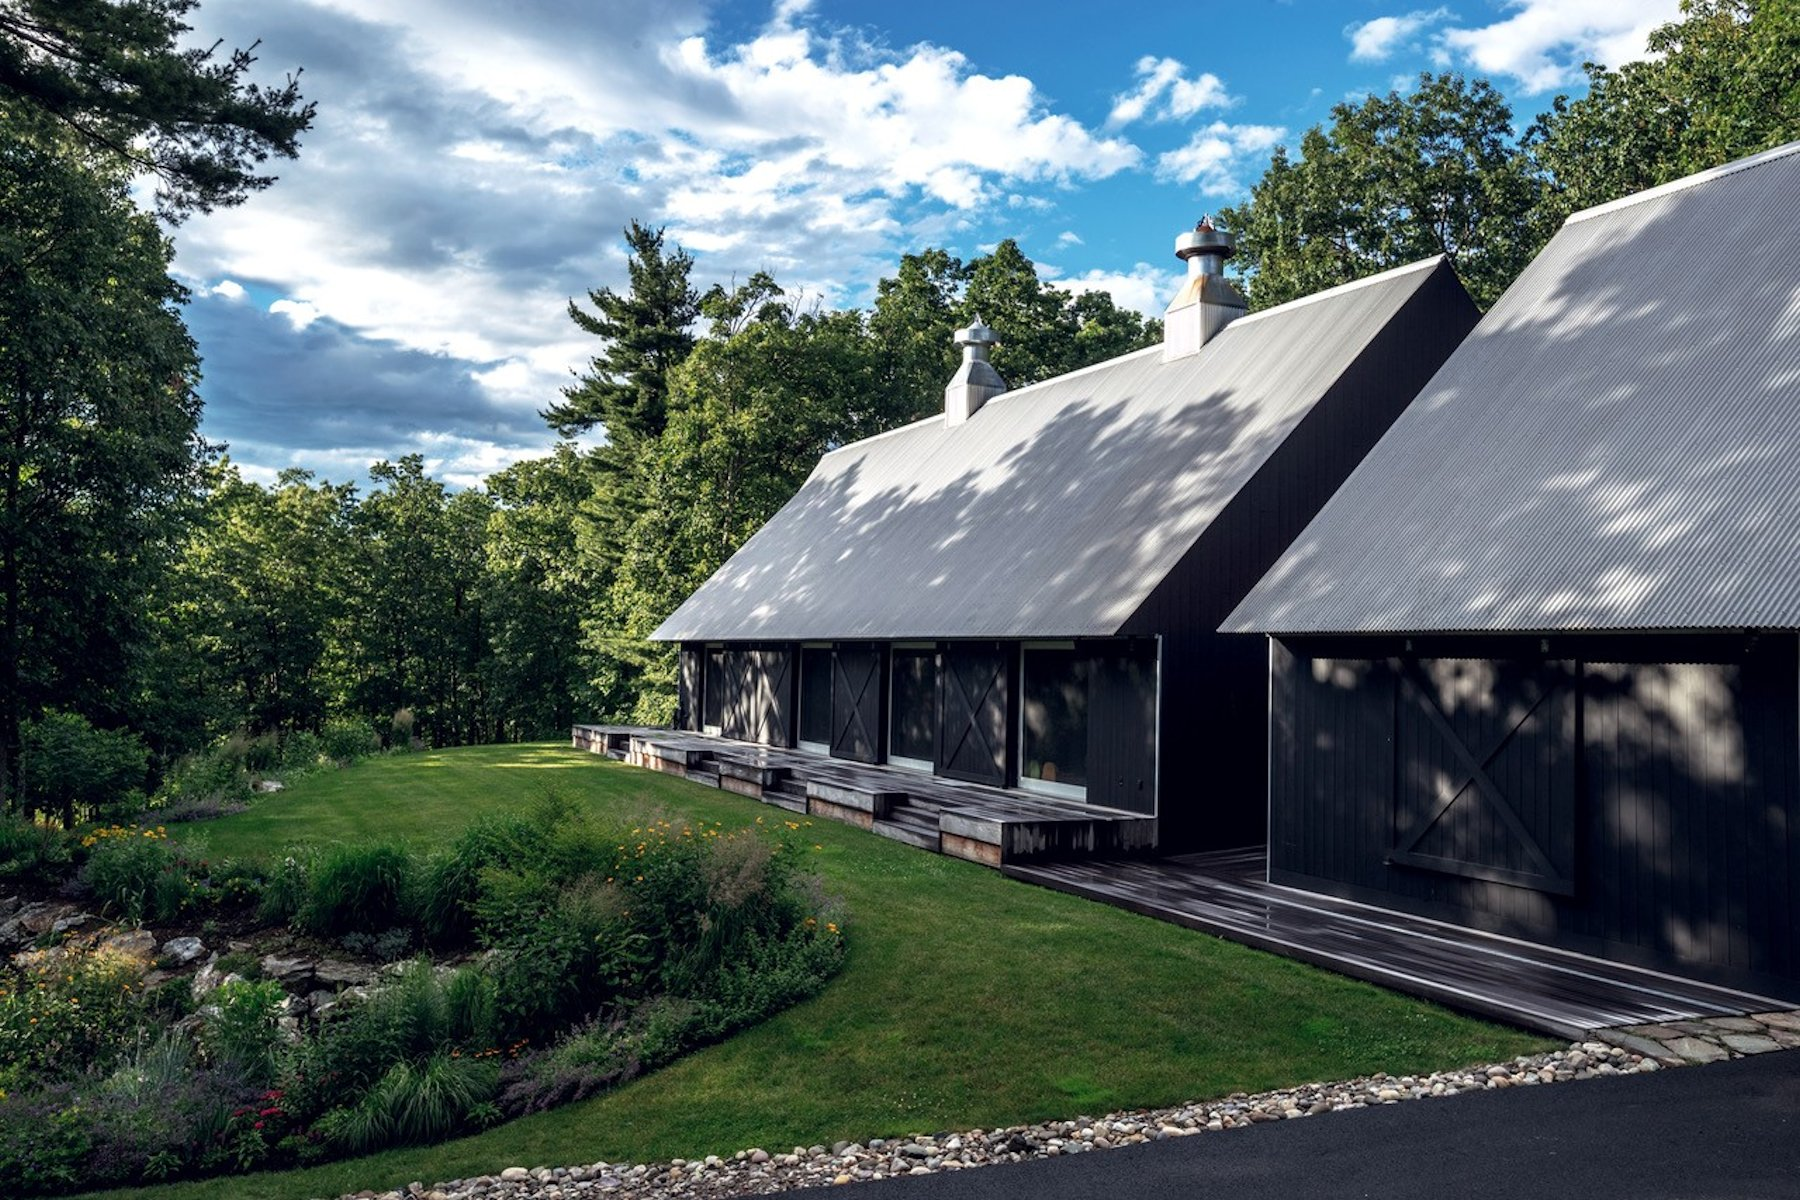 Single Family Home for Sale at Taghkanic Contemporary Craryville, New York 12521 United States